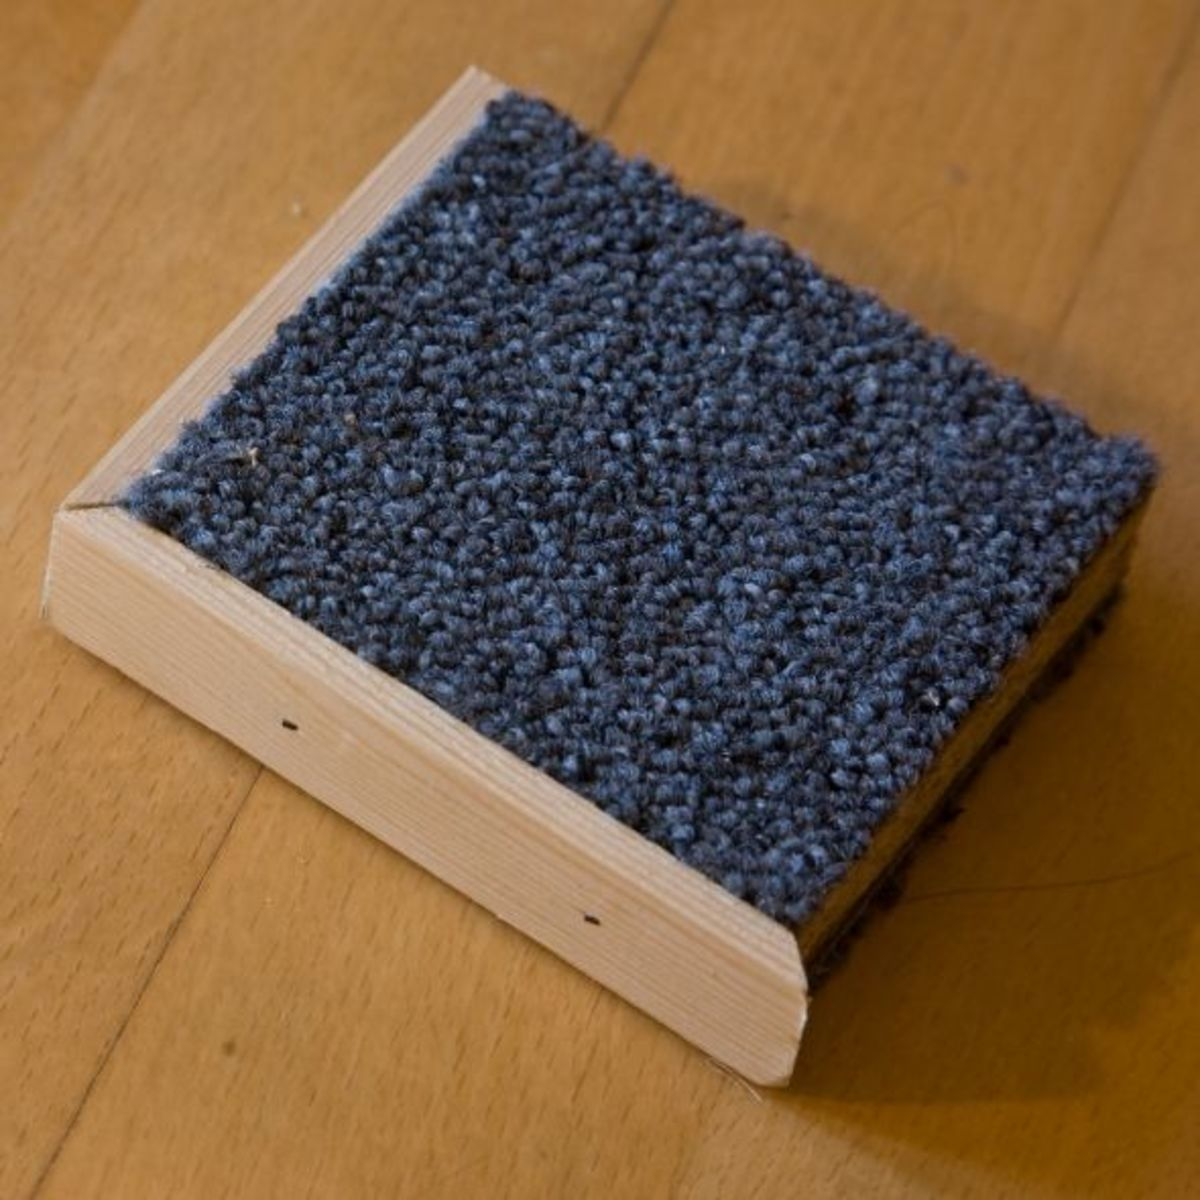 Scrap wood covered in carpet (with trim on edge).